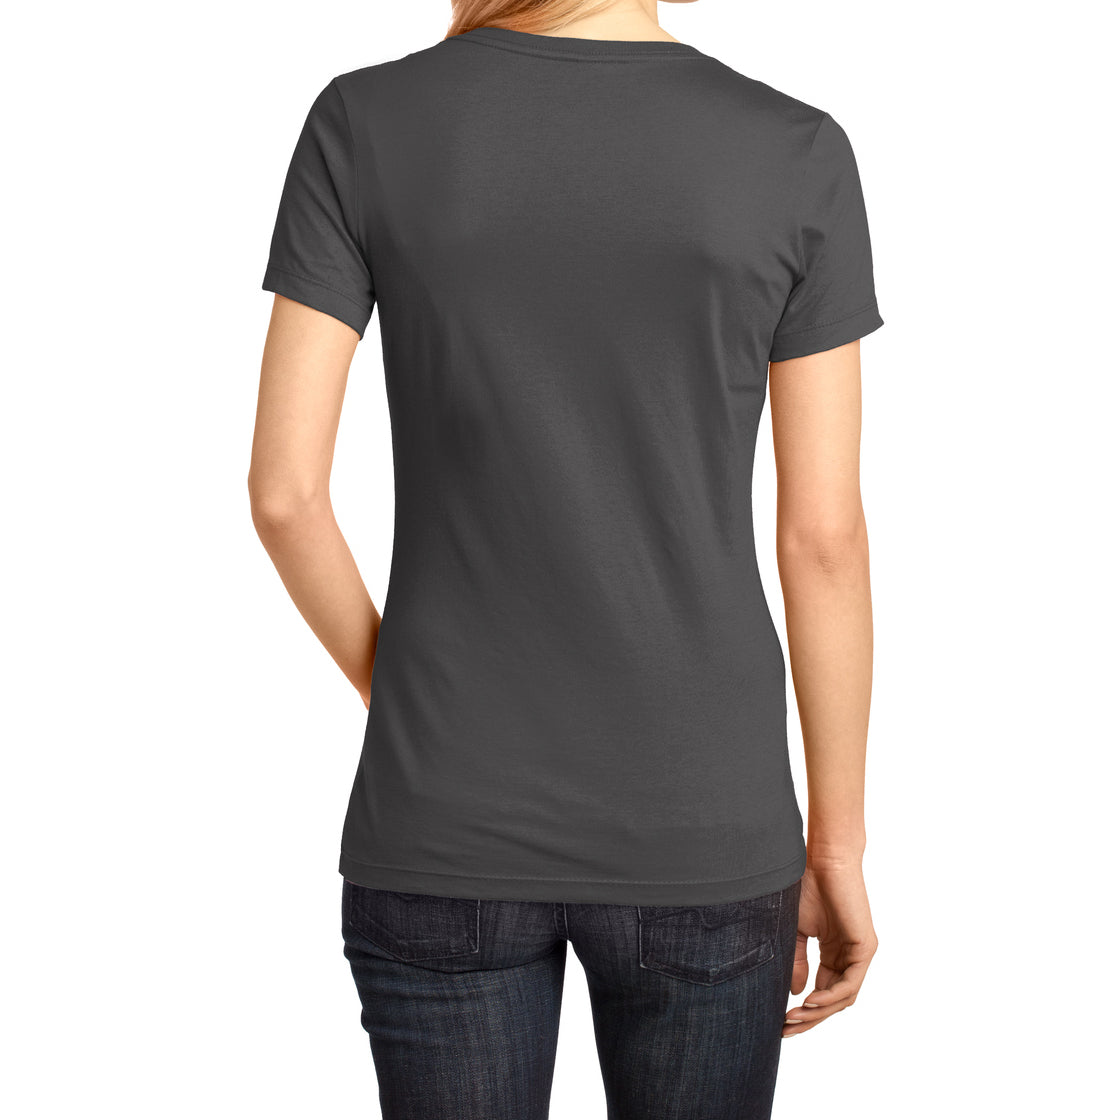 Ladies Perfect Weight V-Neck Tee - Charcoal - Back